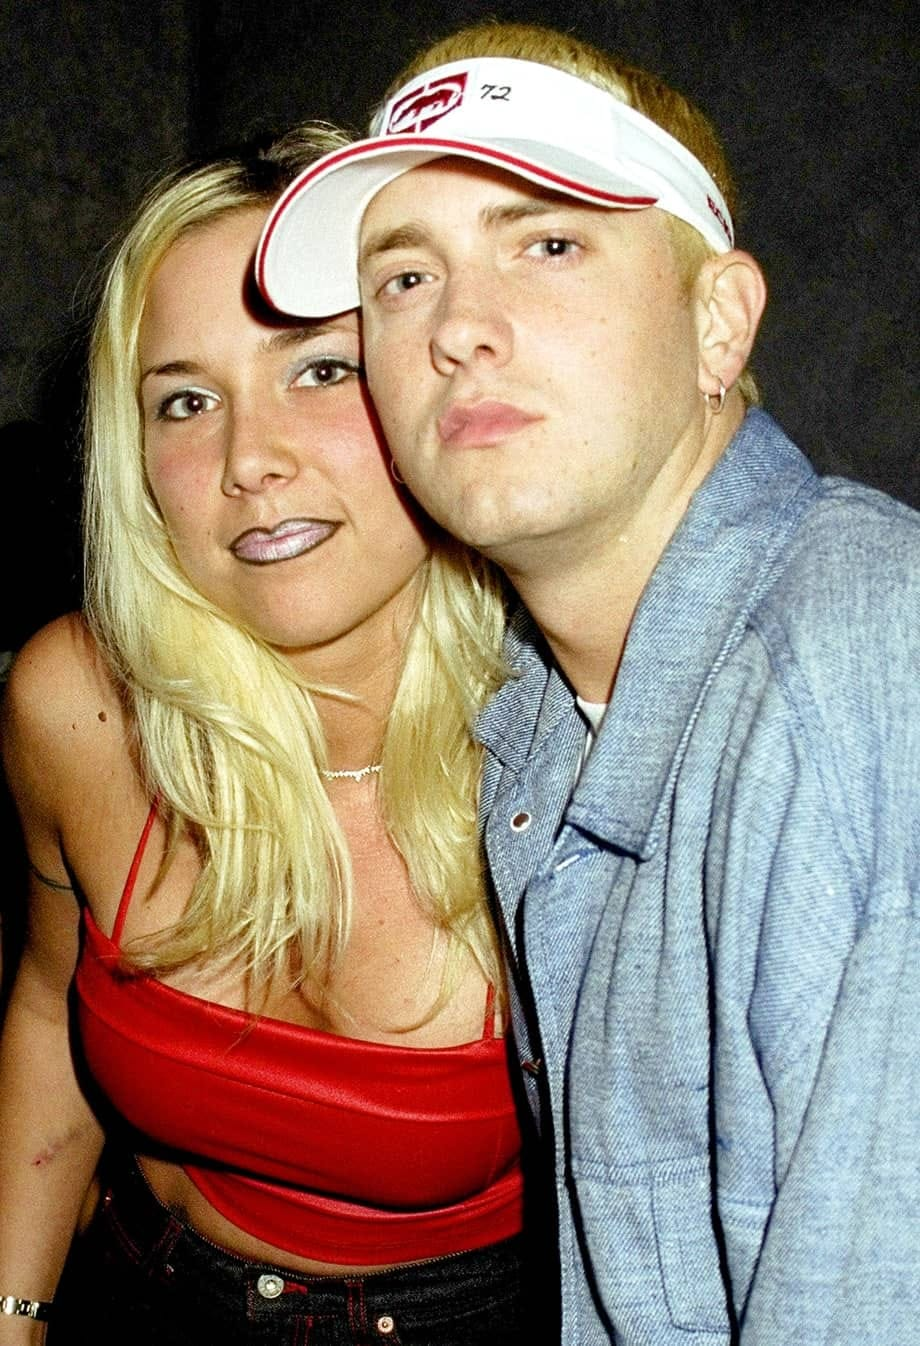 Here Is What Eminem's Wife, Kim, Is Up To These Days - What